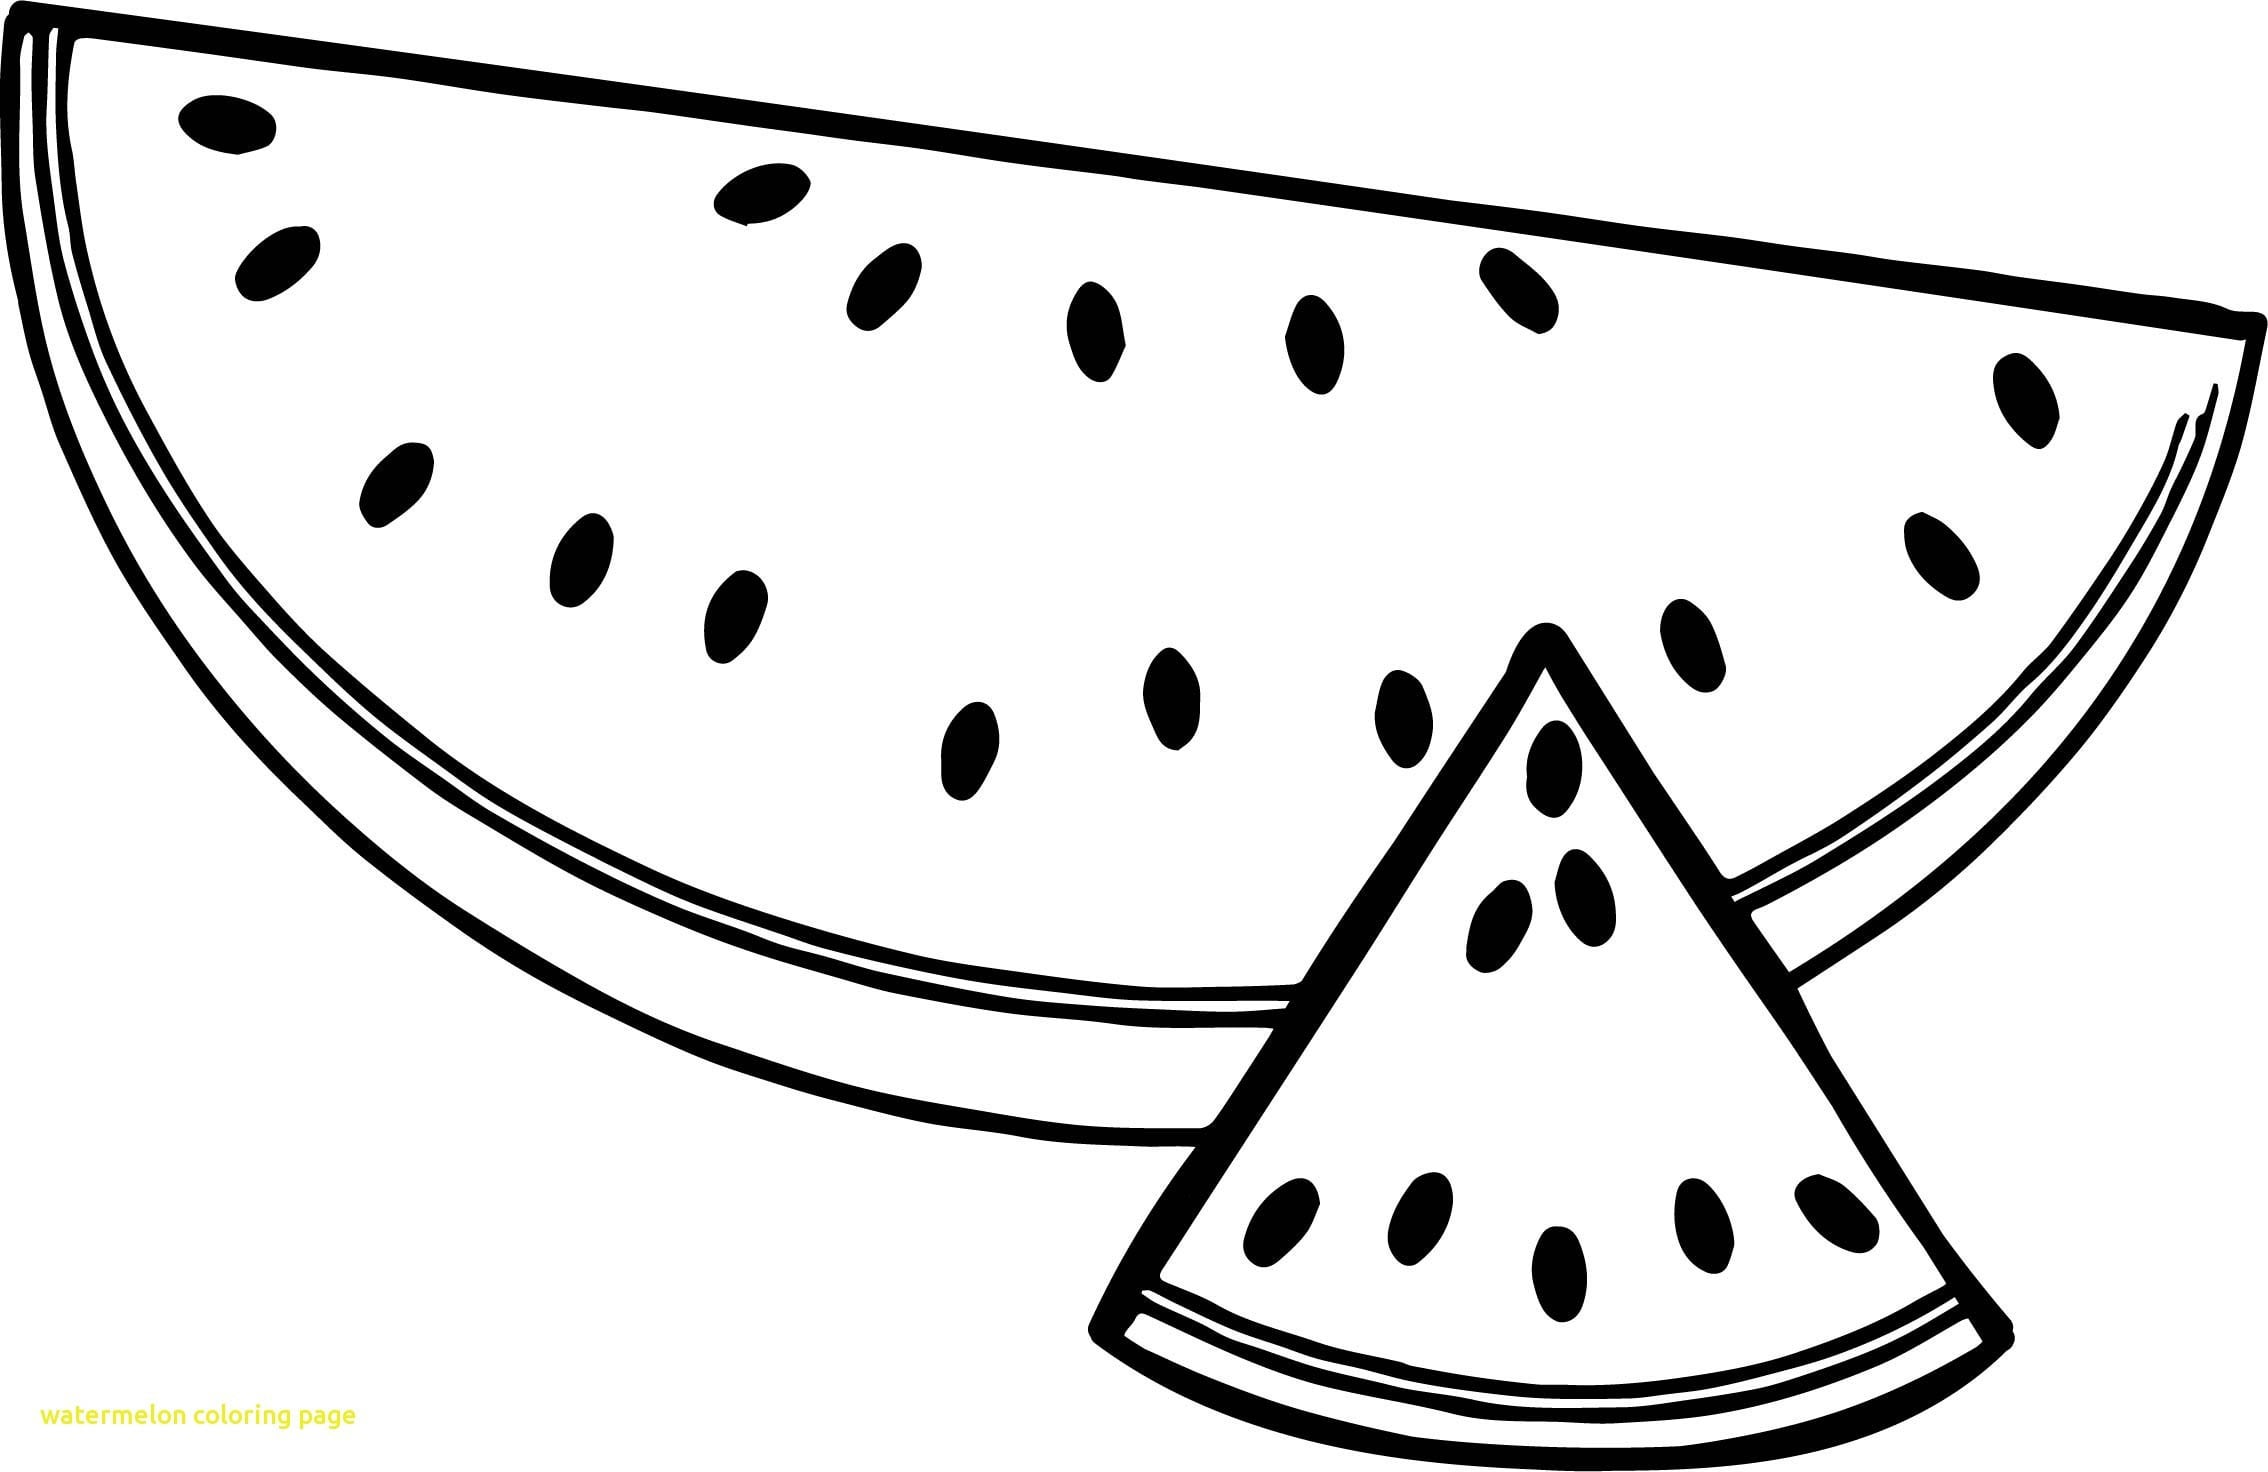 Coloring Pages Of Watermelon